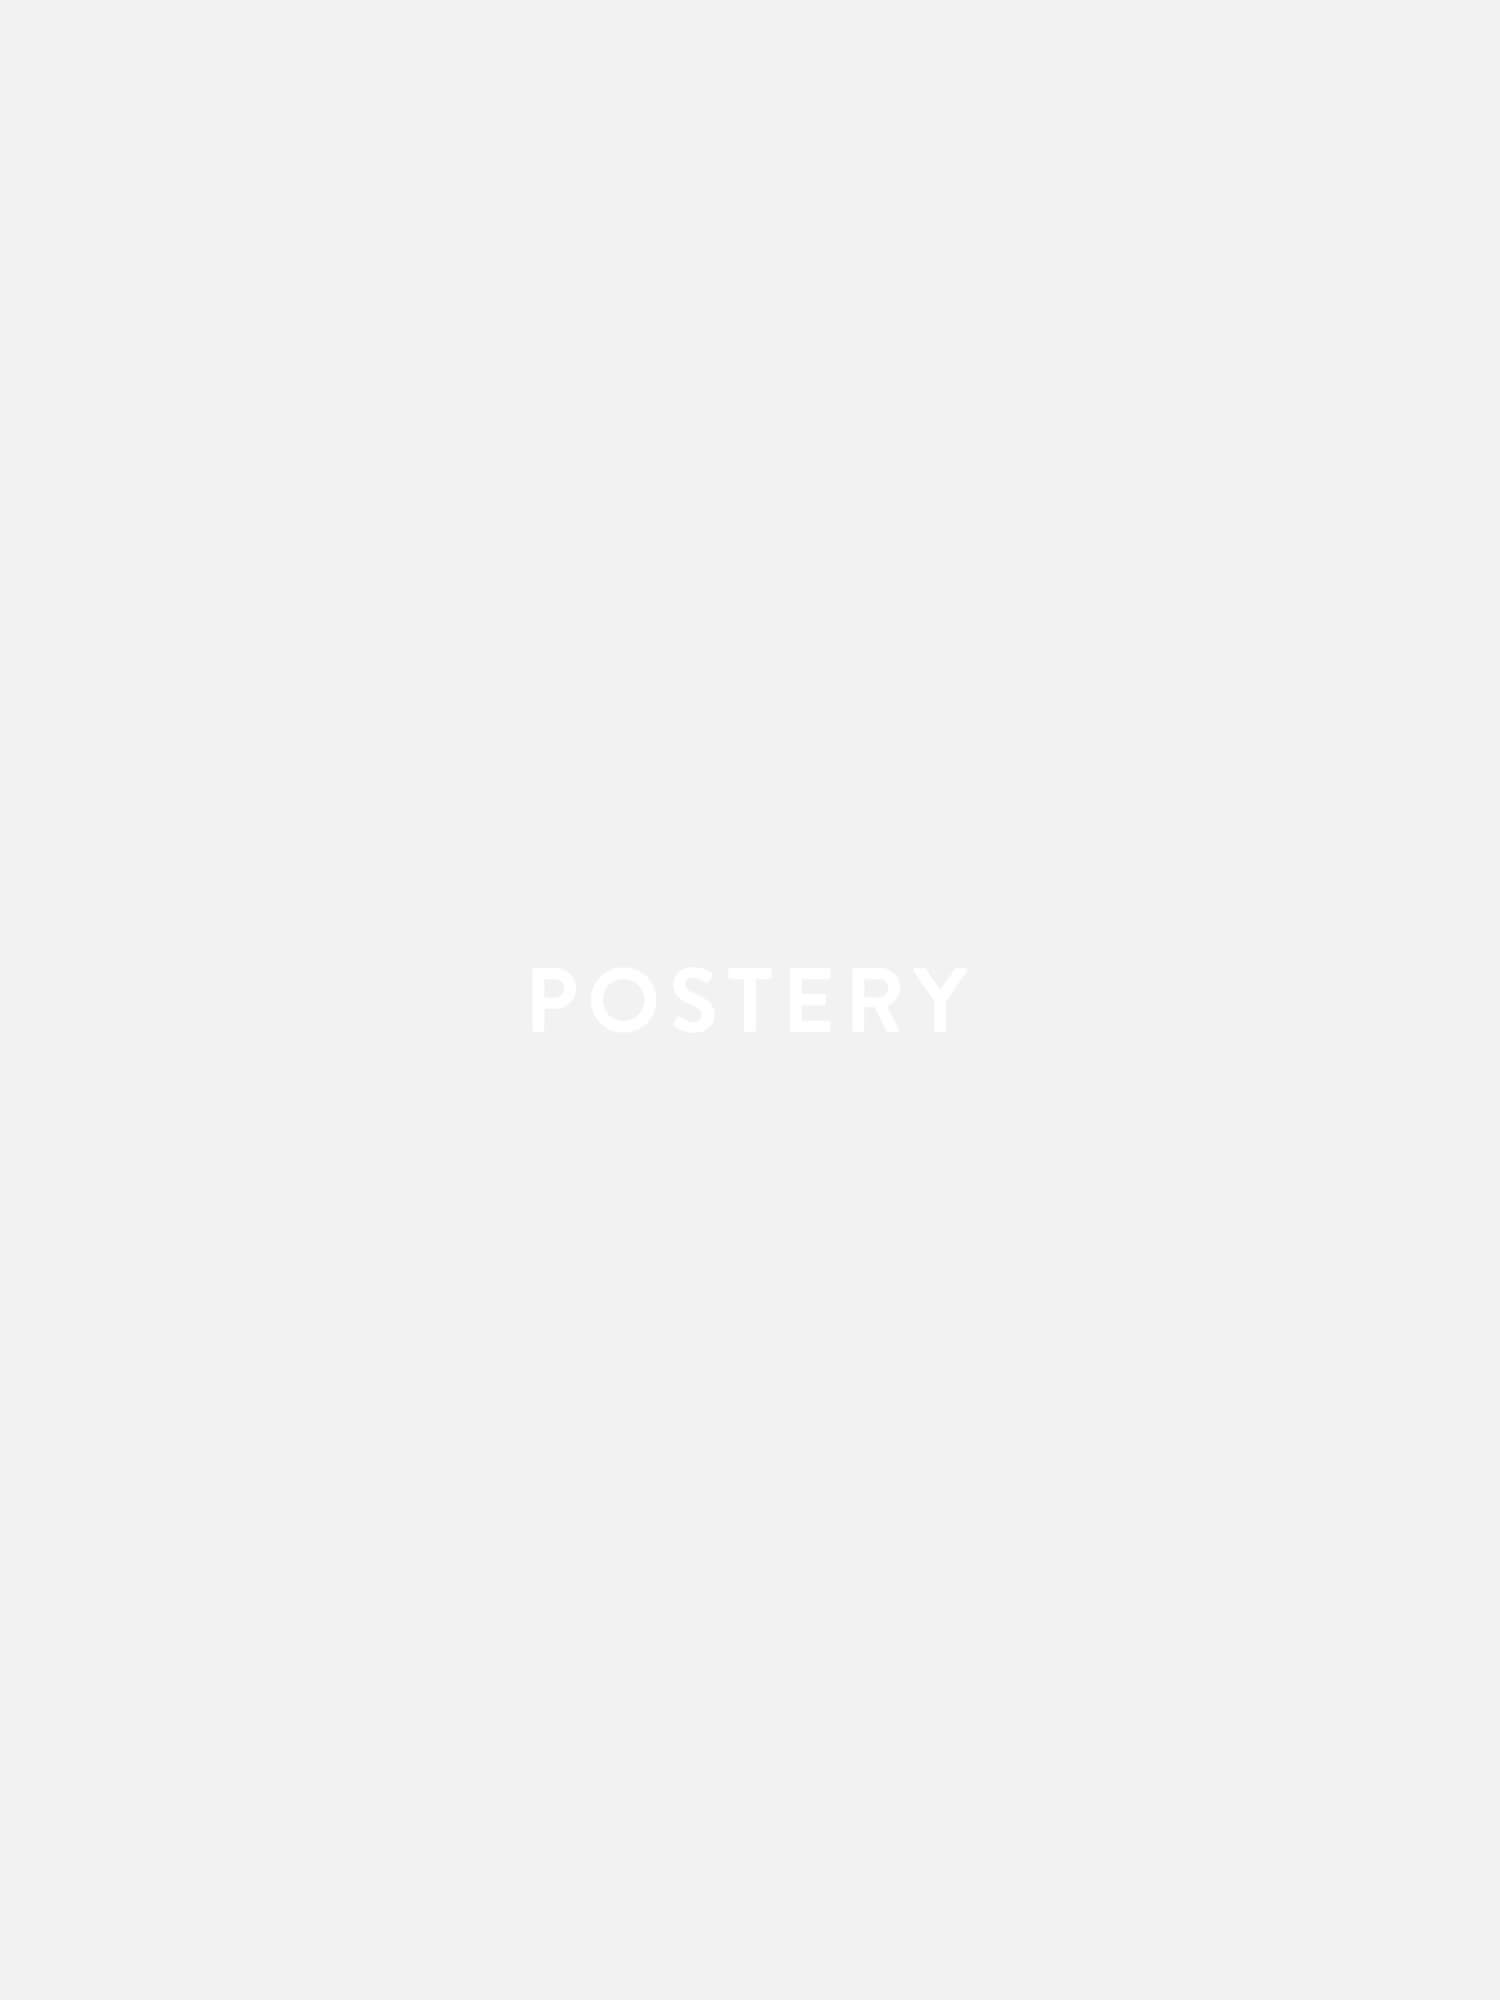 Row of Macarons Poster